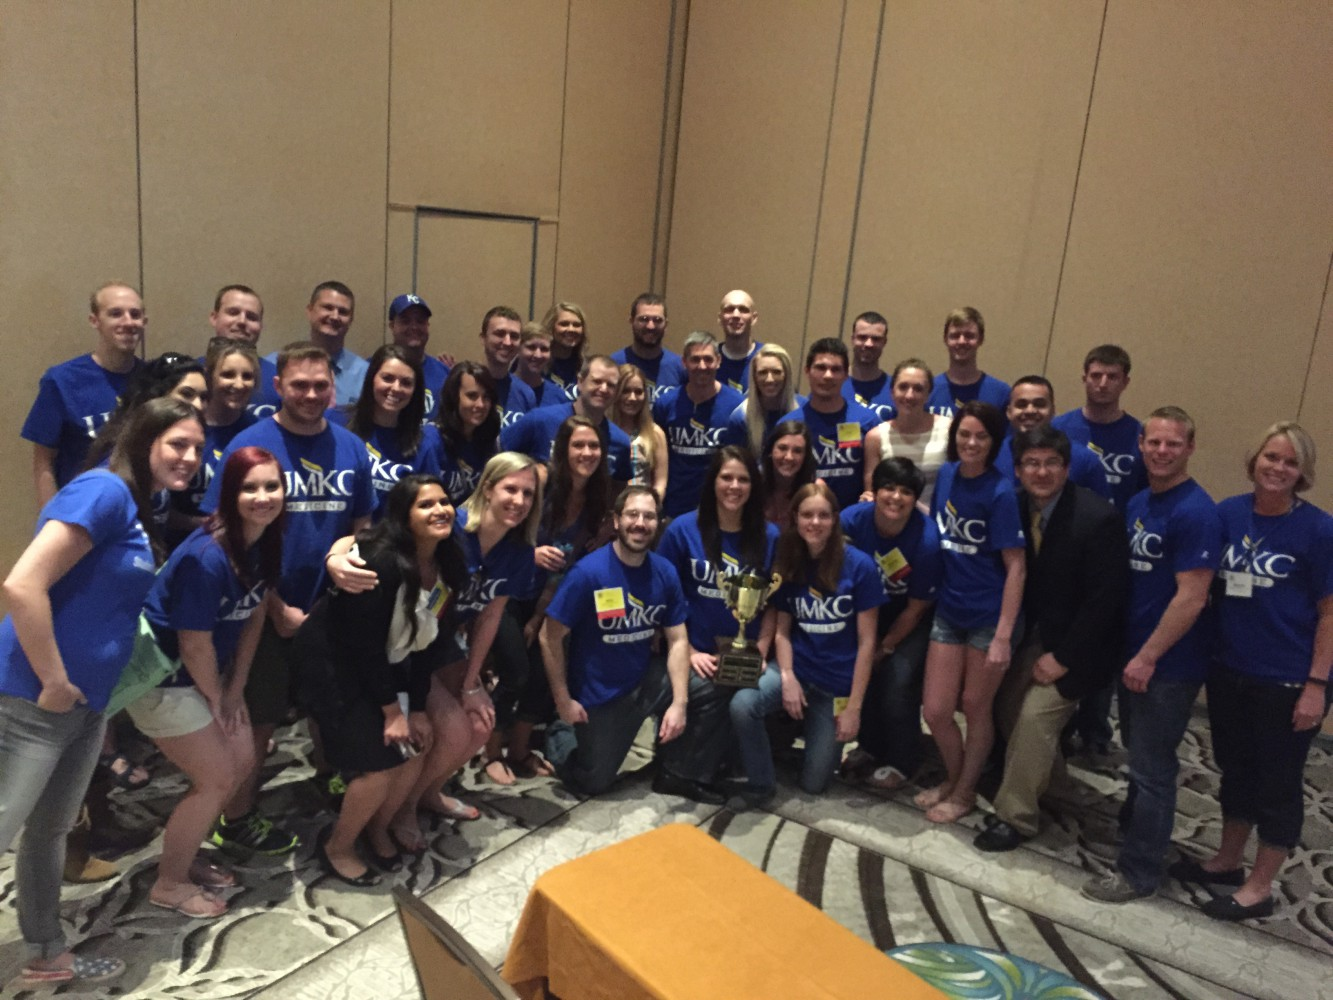 Students from the School of Medicine's Master of Science in Anethesia program gathered for a group photo at the 2015 American Academy of Anesthesiologist Assistants conference in Orlando, Florida.